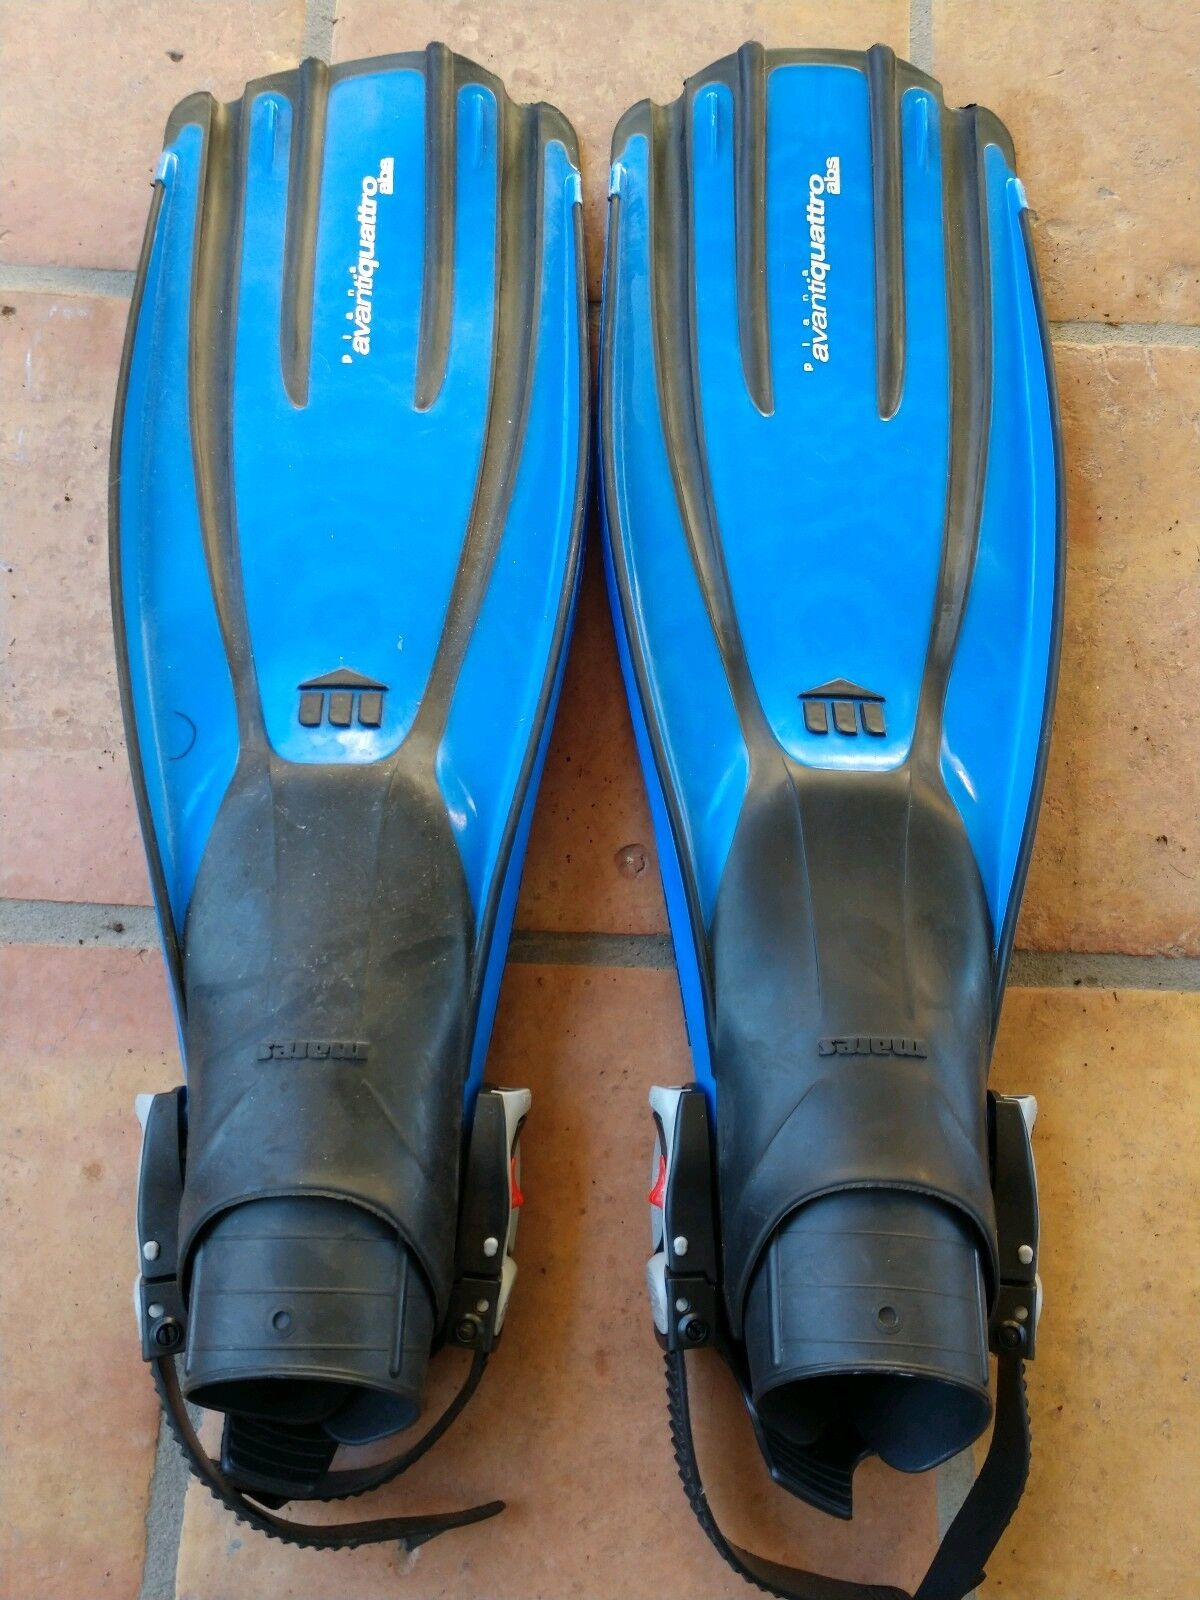 Mares Plana  Avanti Quattro blueee Scuba Diving Fins Size Small Made in   save up to 50%